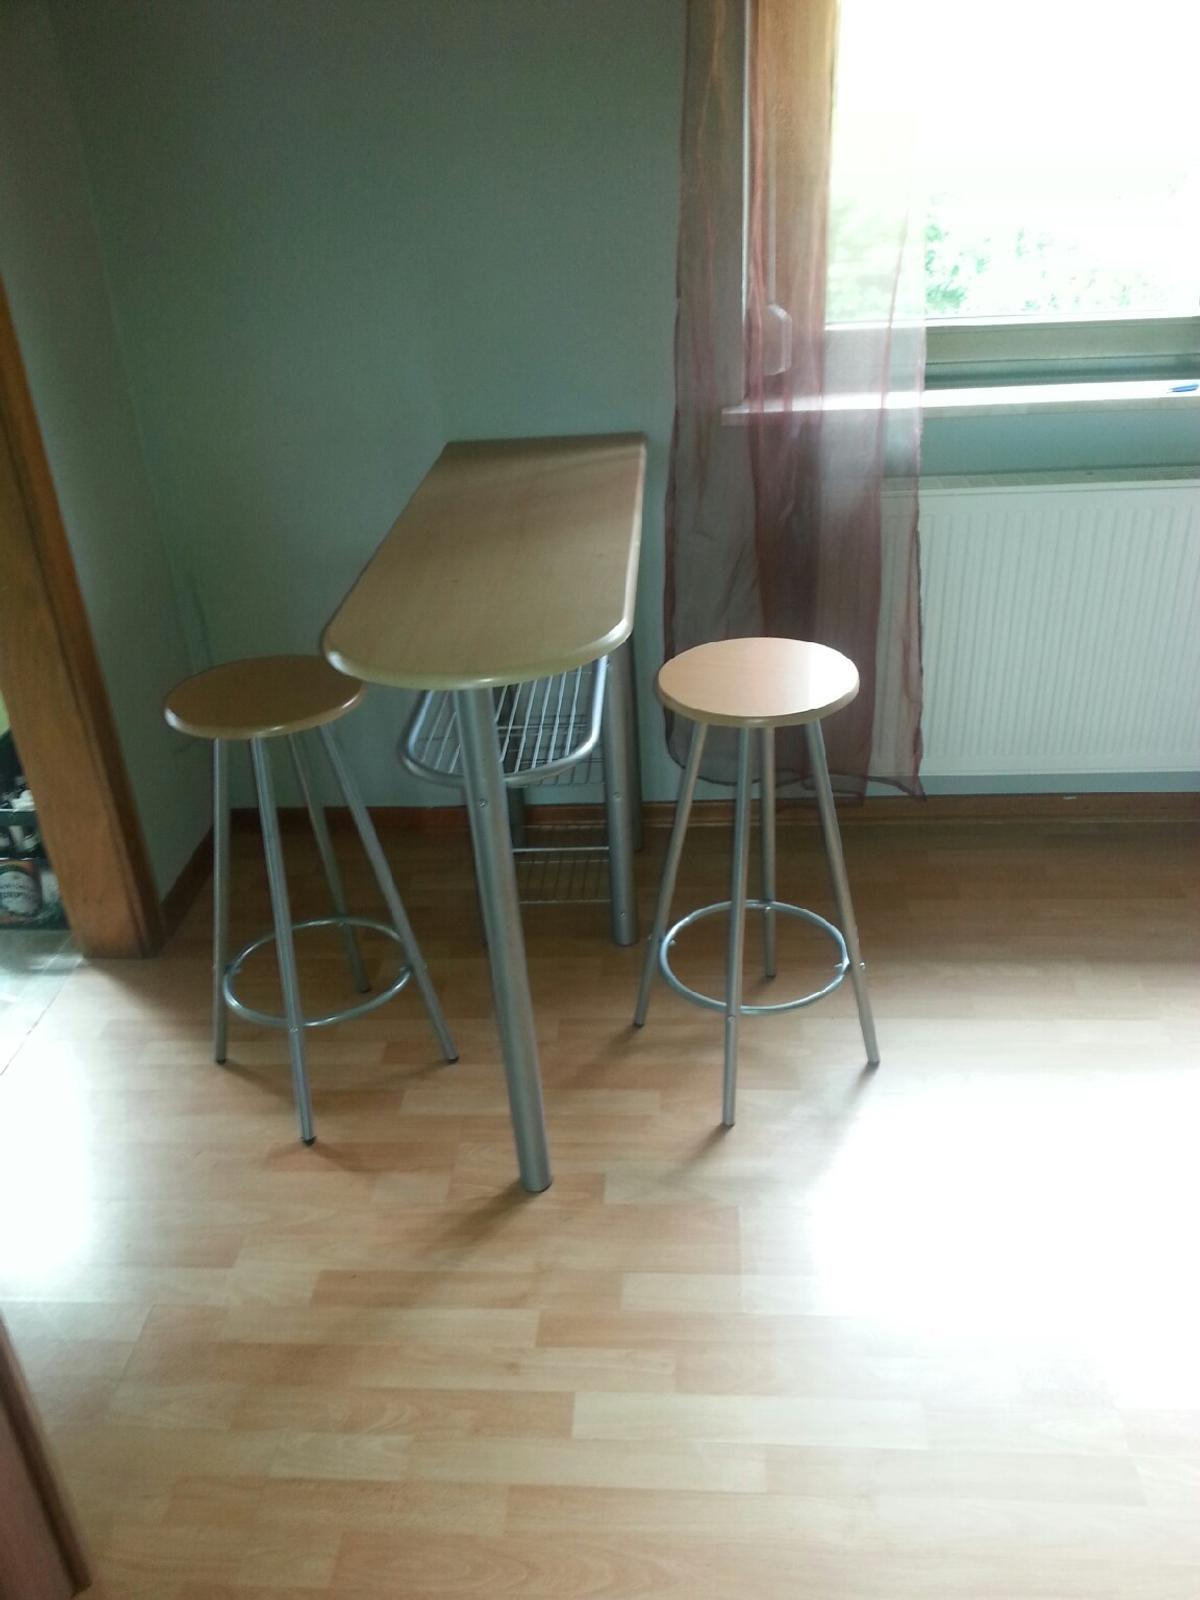 Hocker Küchentheke Küchentheke Mit 2 Hocker In 66625 Nohfelden For €25.00 For Sale | Shpock